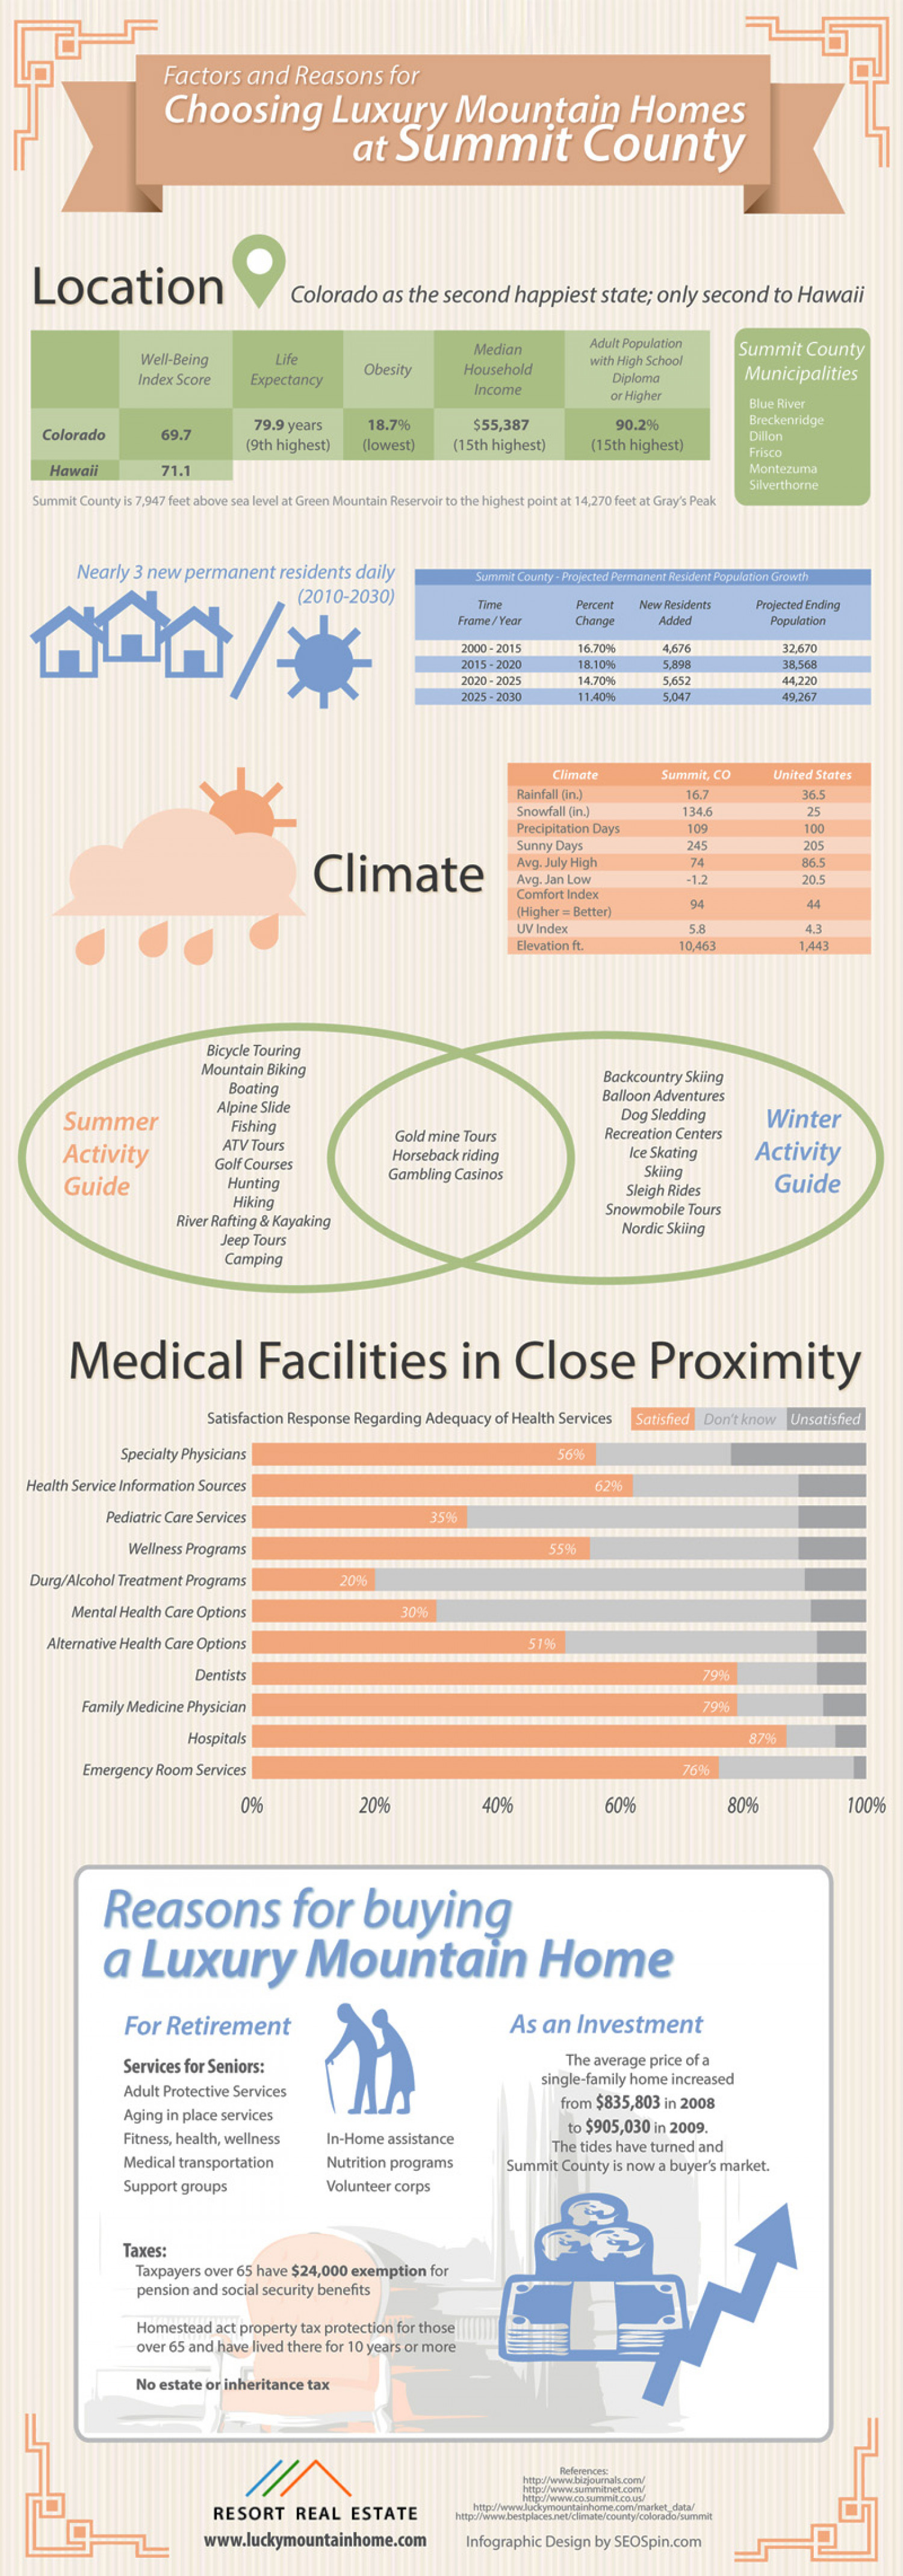 Factors and Reasons for Choosing Luxury Mountain Homes at Summit County Infographic